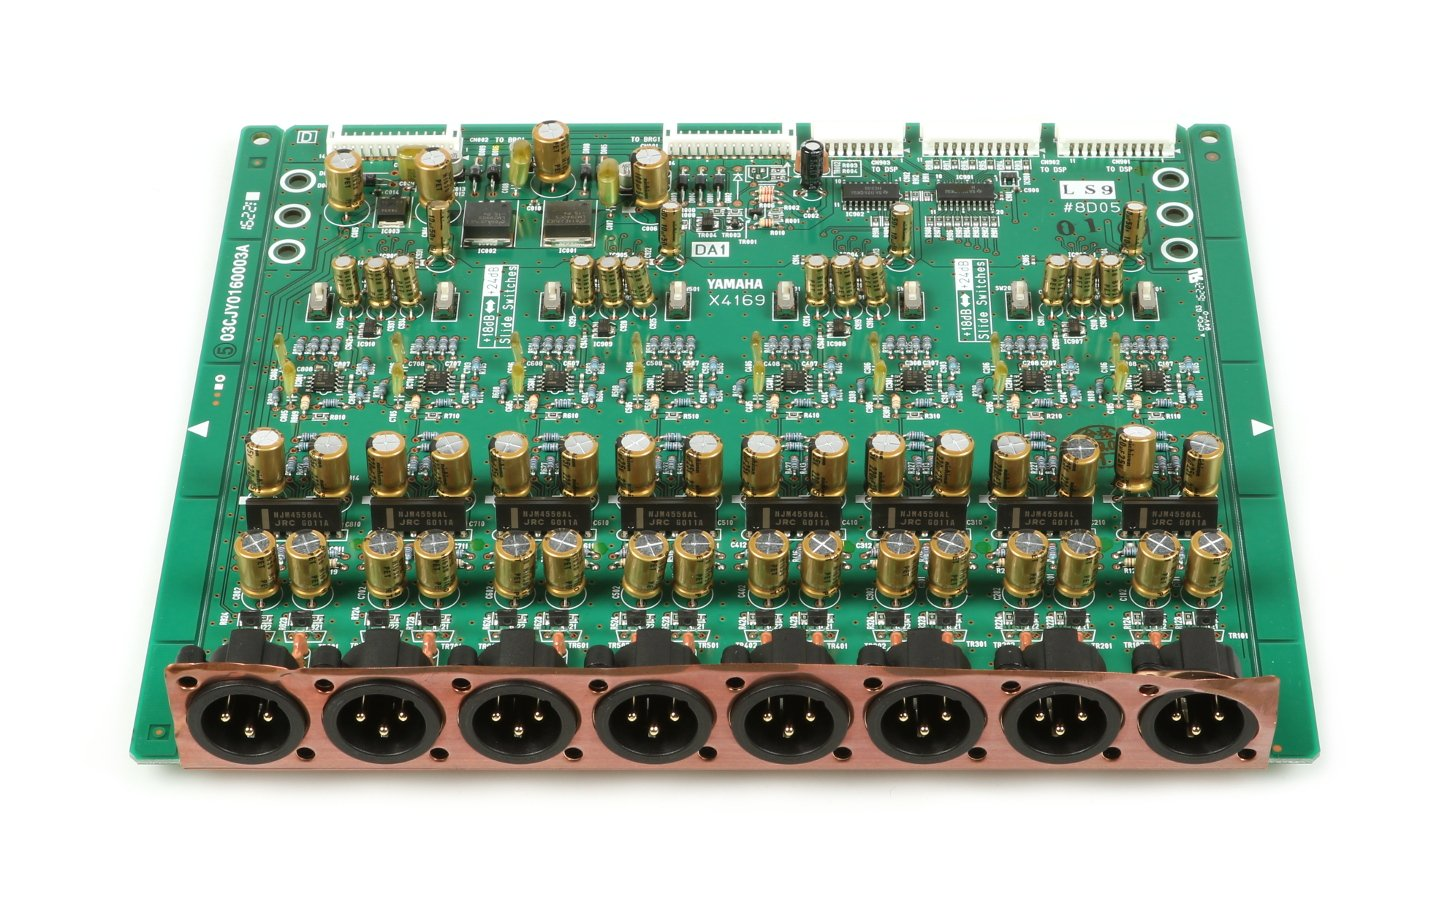 DA PCB Assembly for LS9-16 and LS9-32